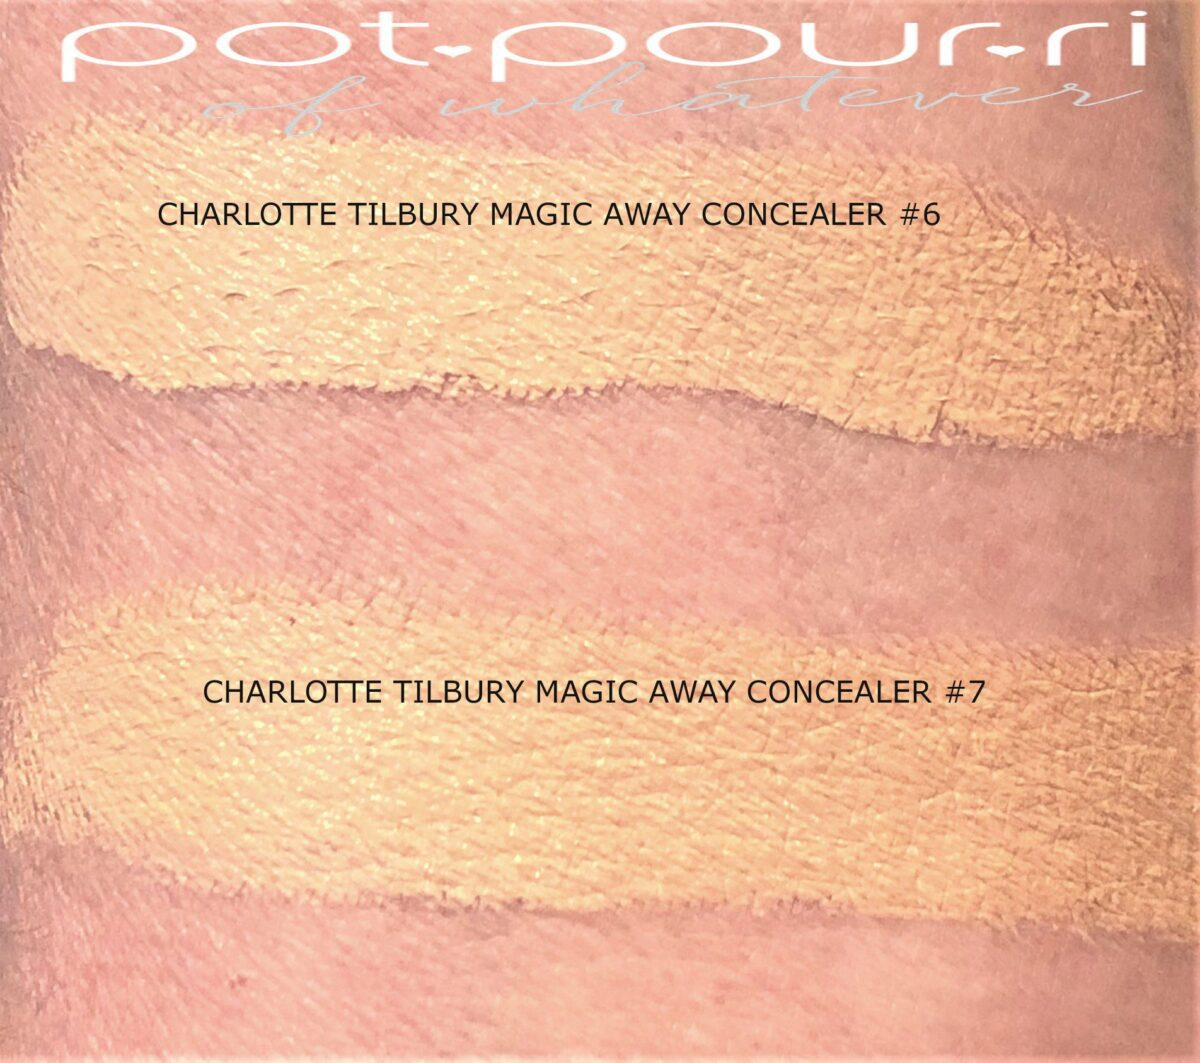 MORE SWATCHES FOR CHARLOTTE TILBURY MAGIC AWAY CONCEALER